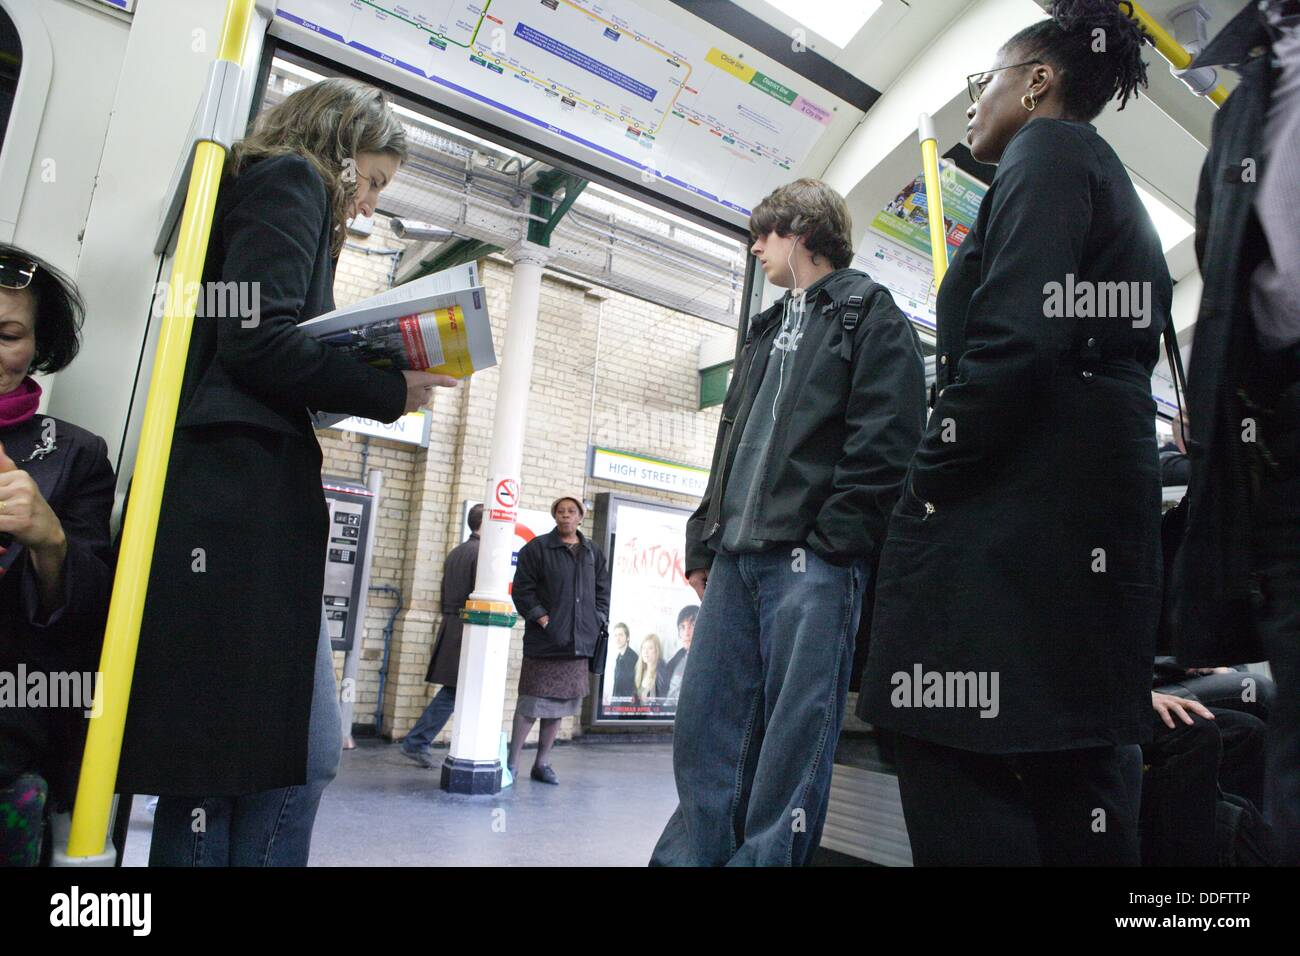 Tube train and commuters at a station, London, England - Stock Image